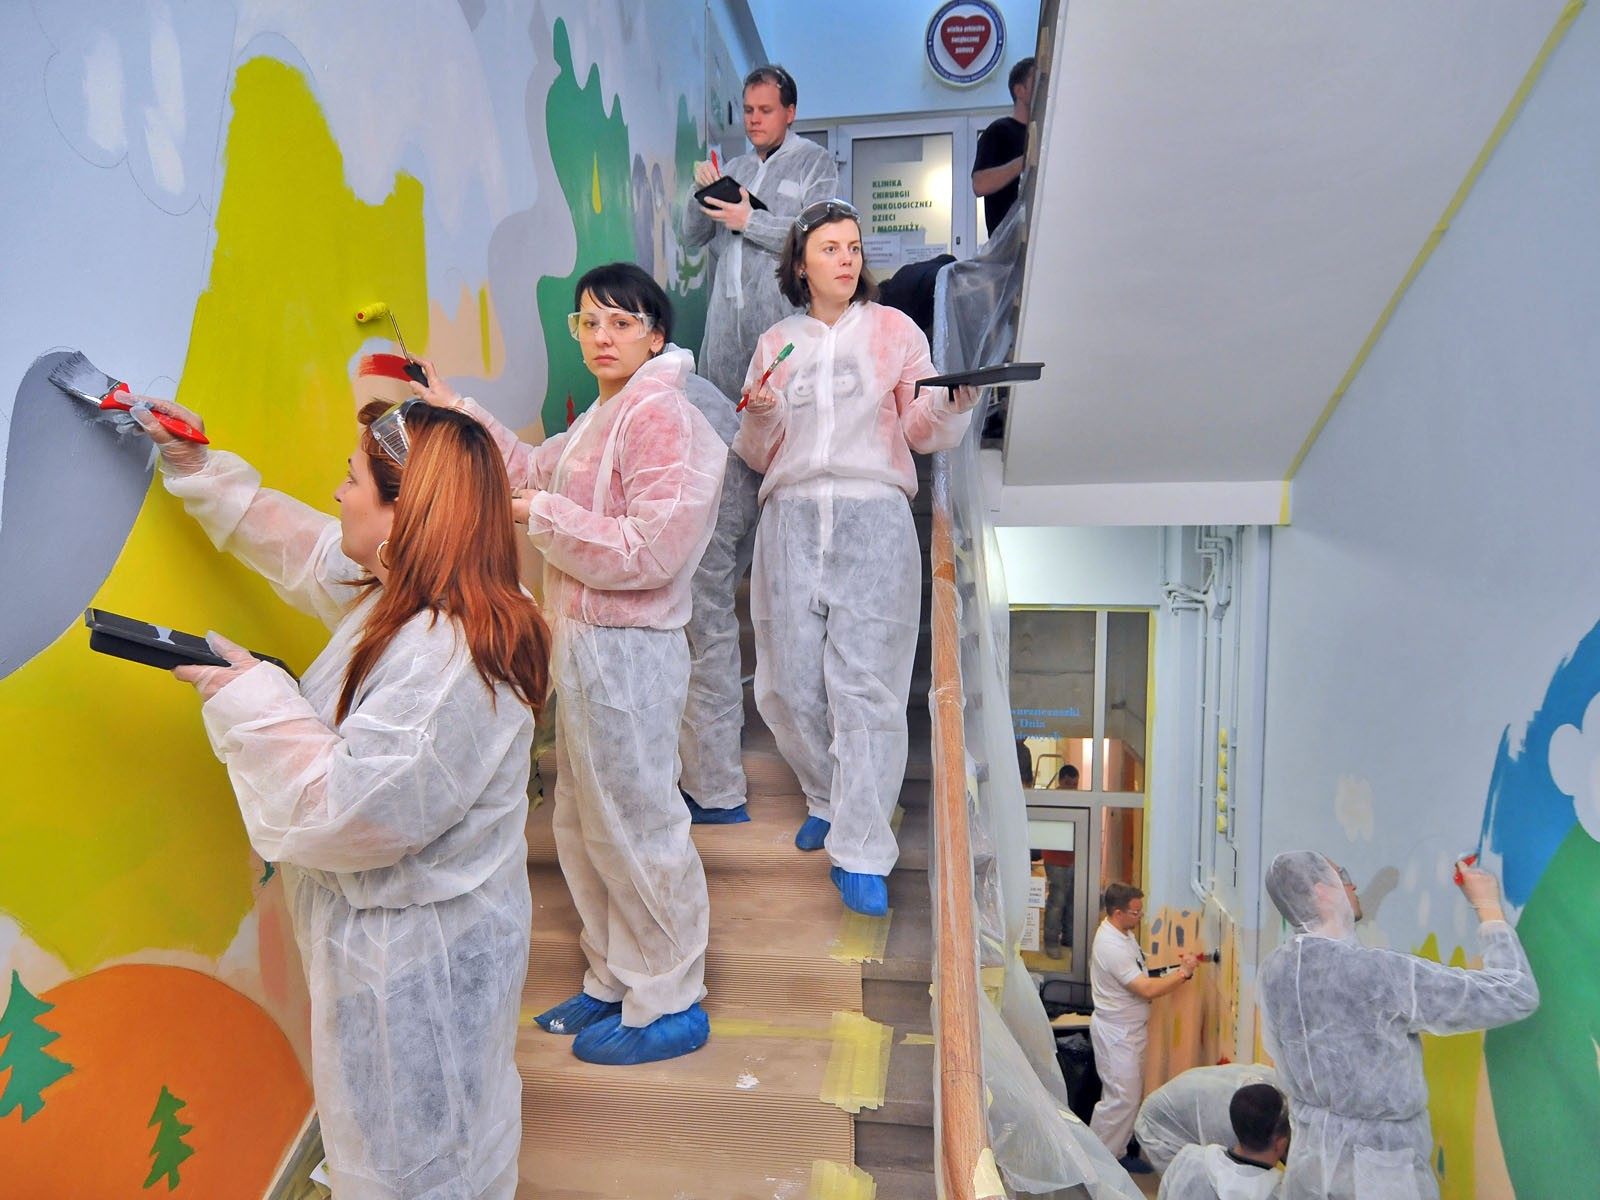 Charity event Dulux Lets Colour - Painting on the hall and stairway wall in Mother and Child Institute | Let's Colour | Portfolio